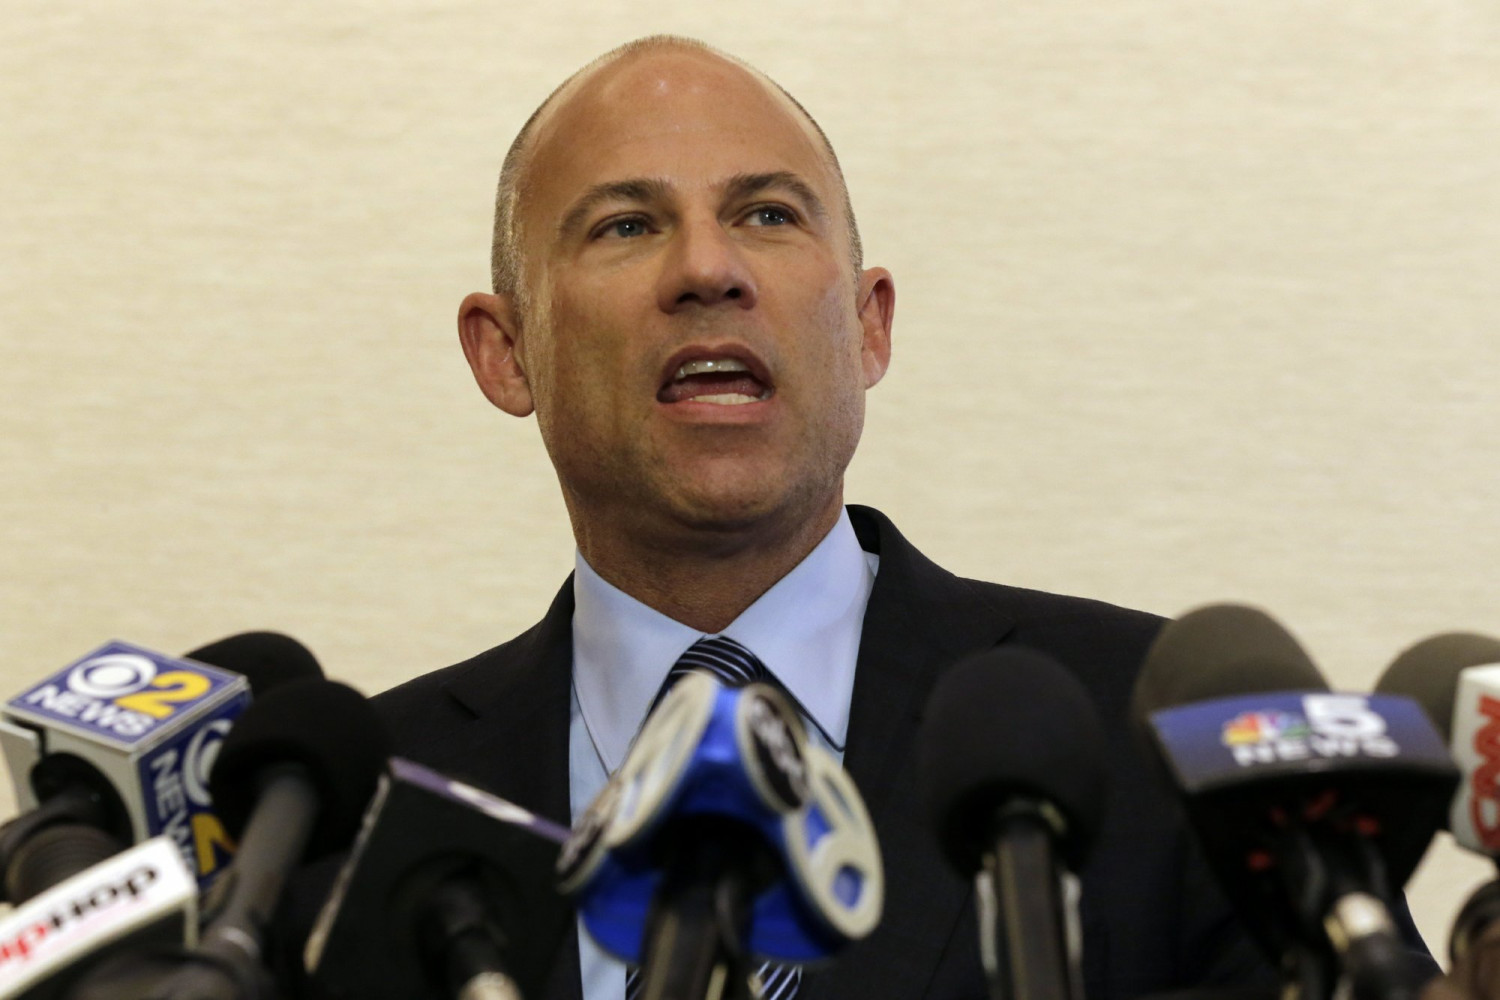 Attorney Michael Avenatti speaks at a news conference on Chicago